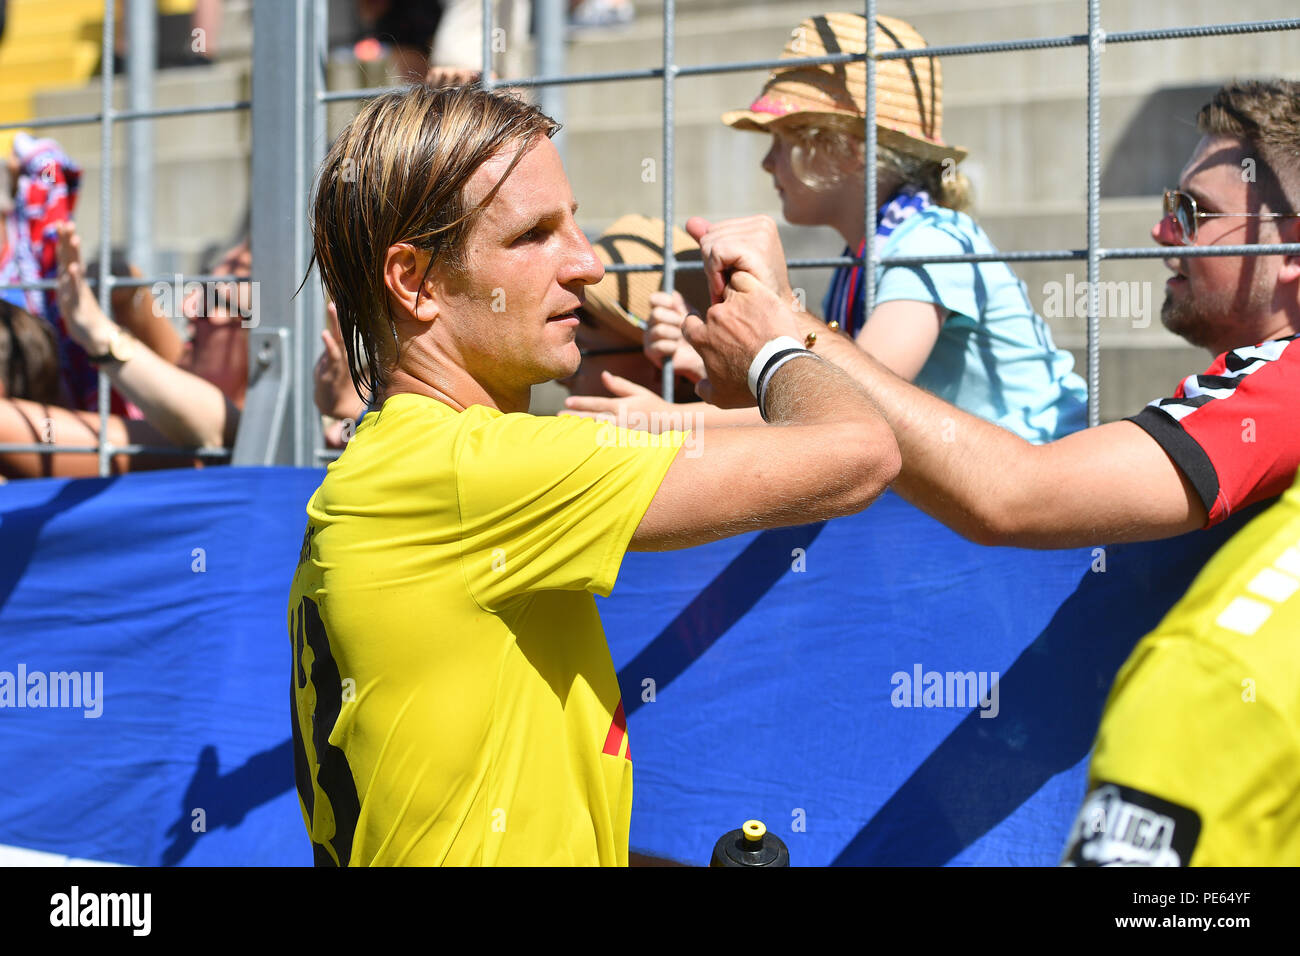 Munich, Deutschland. 12th Aug, 2018. Stefan AIGNER (KFC) celebrates after the end of the game with the Krefeld fans, football fans. Soccer 3. Liga, 4. matchday, TSV Munich 1860-KFC Uerdingen 0-1, on 12/08/2018. Stadium at Gruenwalder Strasse in Munich, DFL REGULATIONS PROHIBIT ANY USE OF PHOTOGRAPH AS IMAGE SEQUENCES AND/OR QUASI VIDEO. | usage worldwide Credit: dpa/Alamy Live News - Stock Image